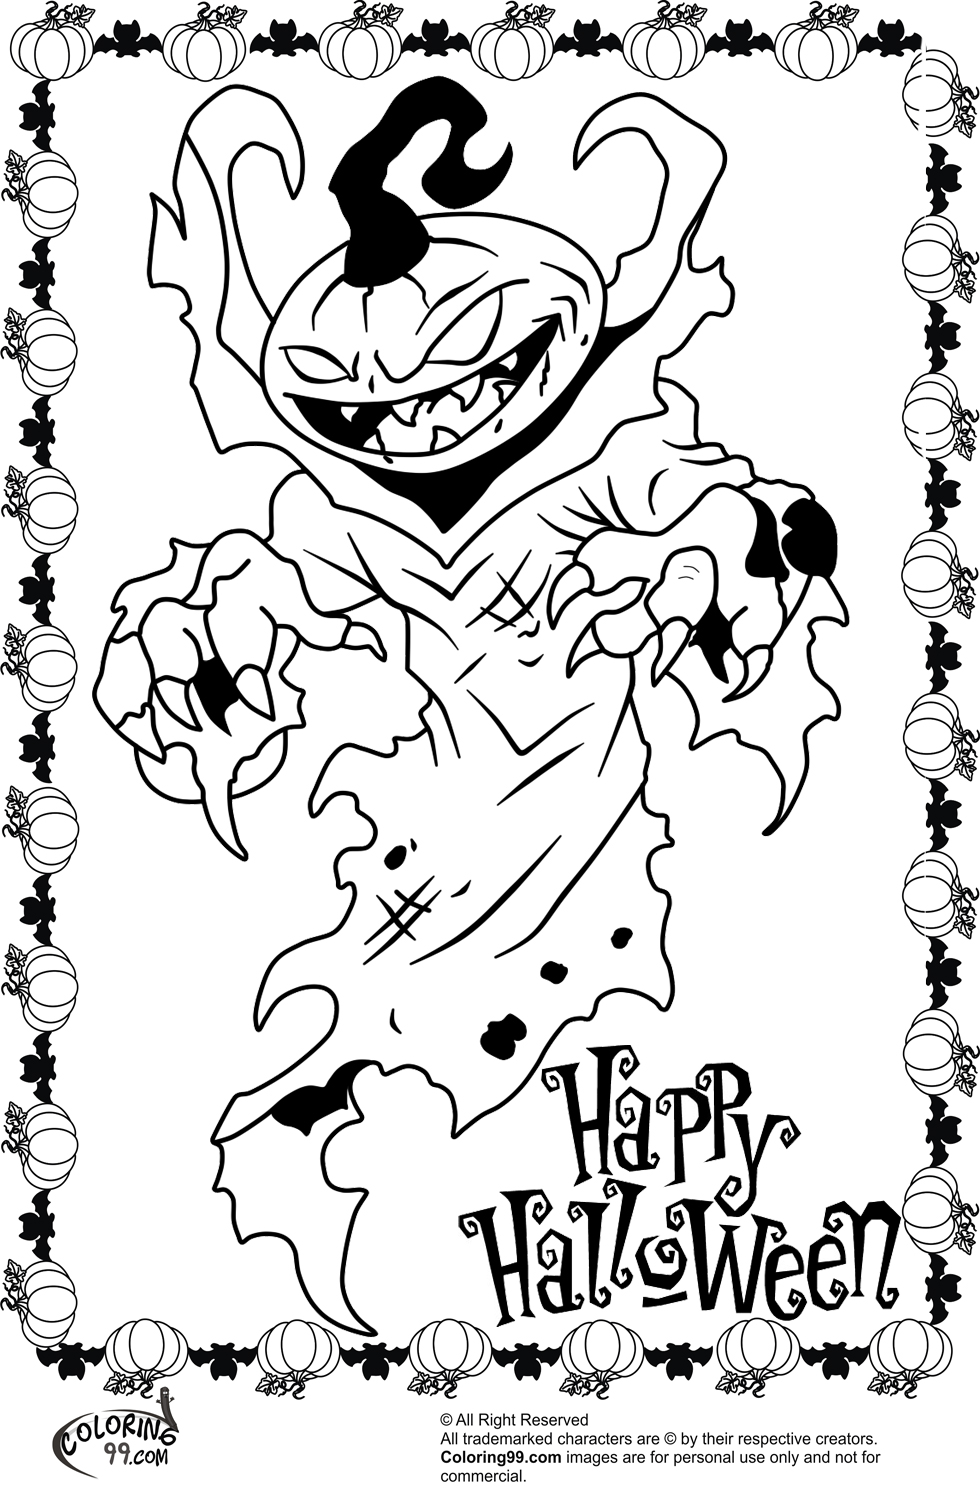 coloring pages halloween scary halloween coloring pages free scary halloween coloring scary pages halloween coloring